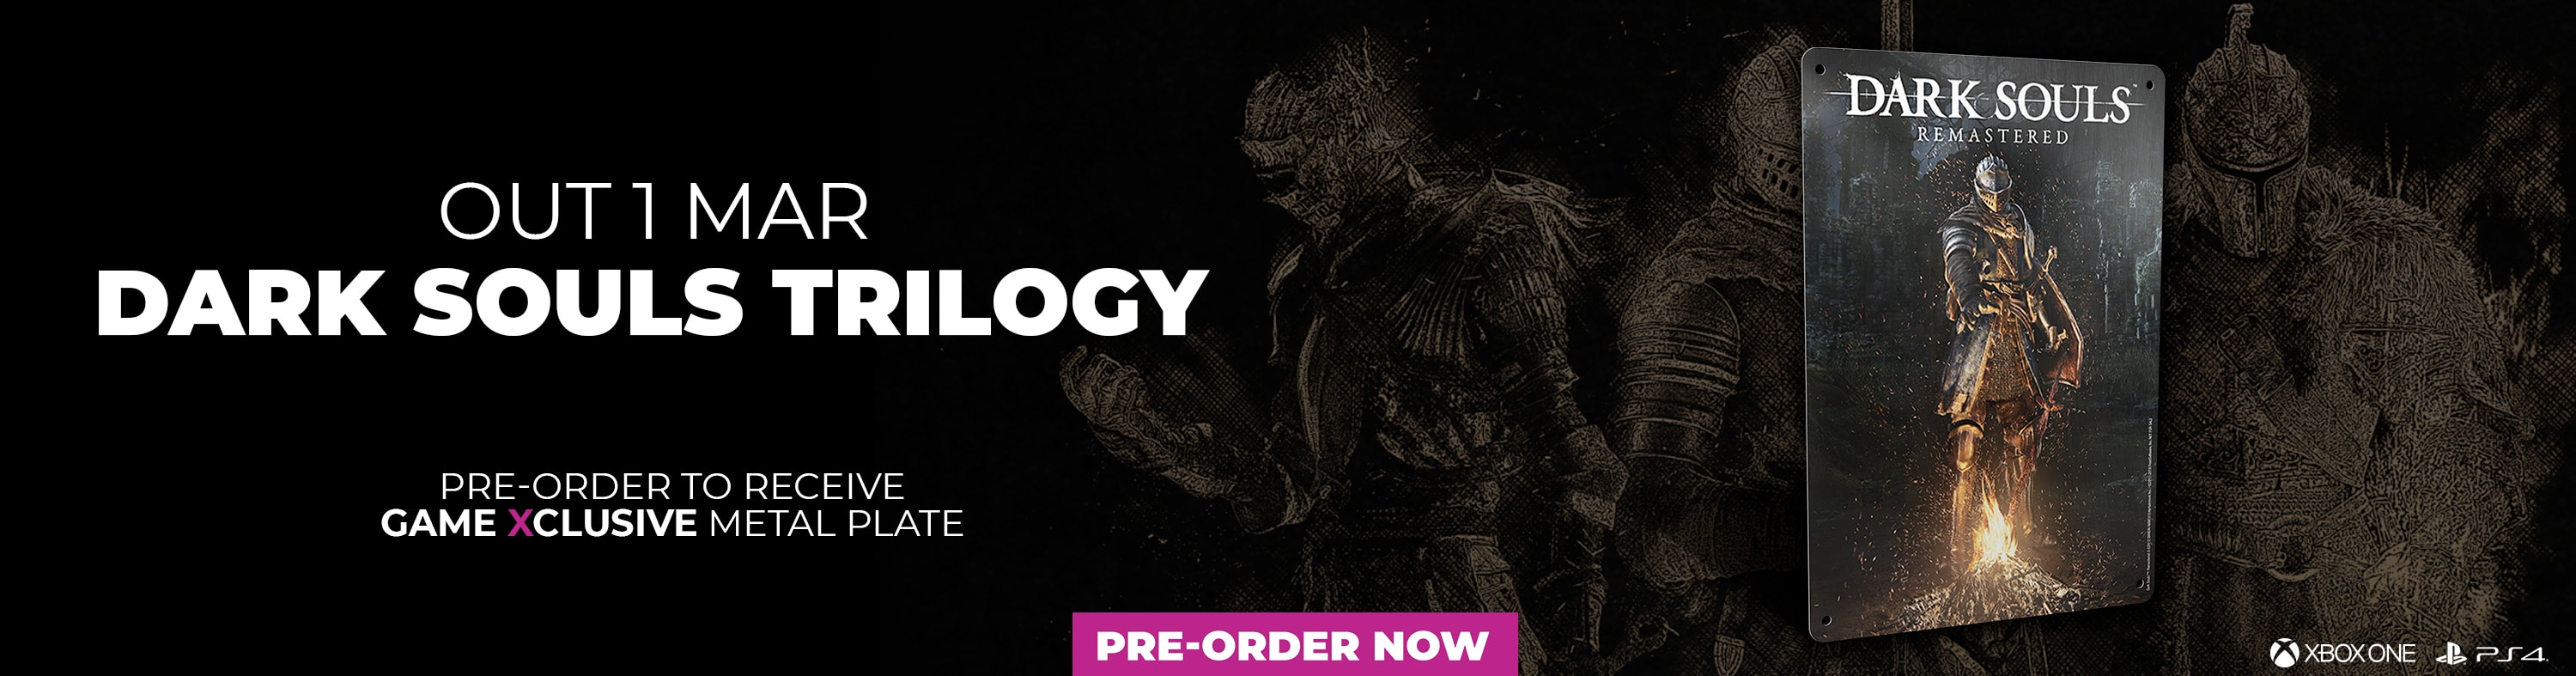 Dark Souls Trilogy - Pre-Order to Receive Game Exclusive Metal Plate